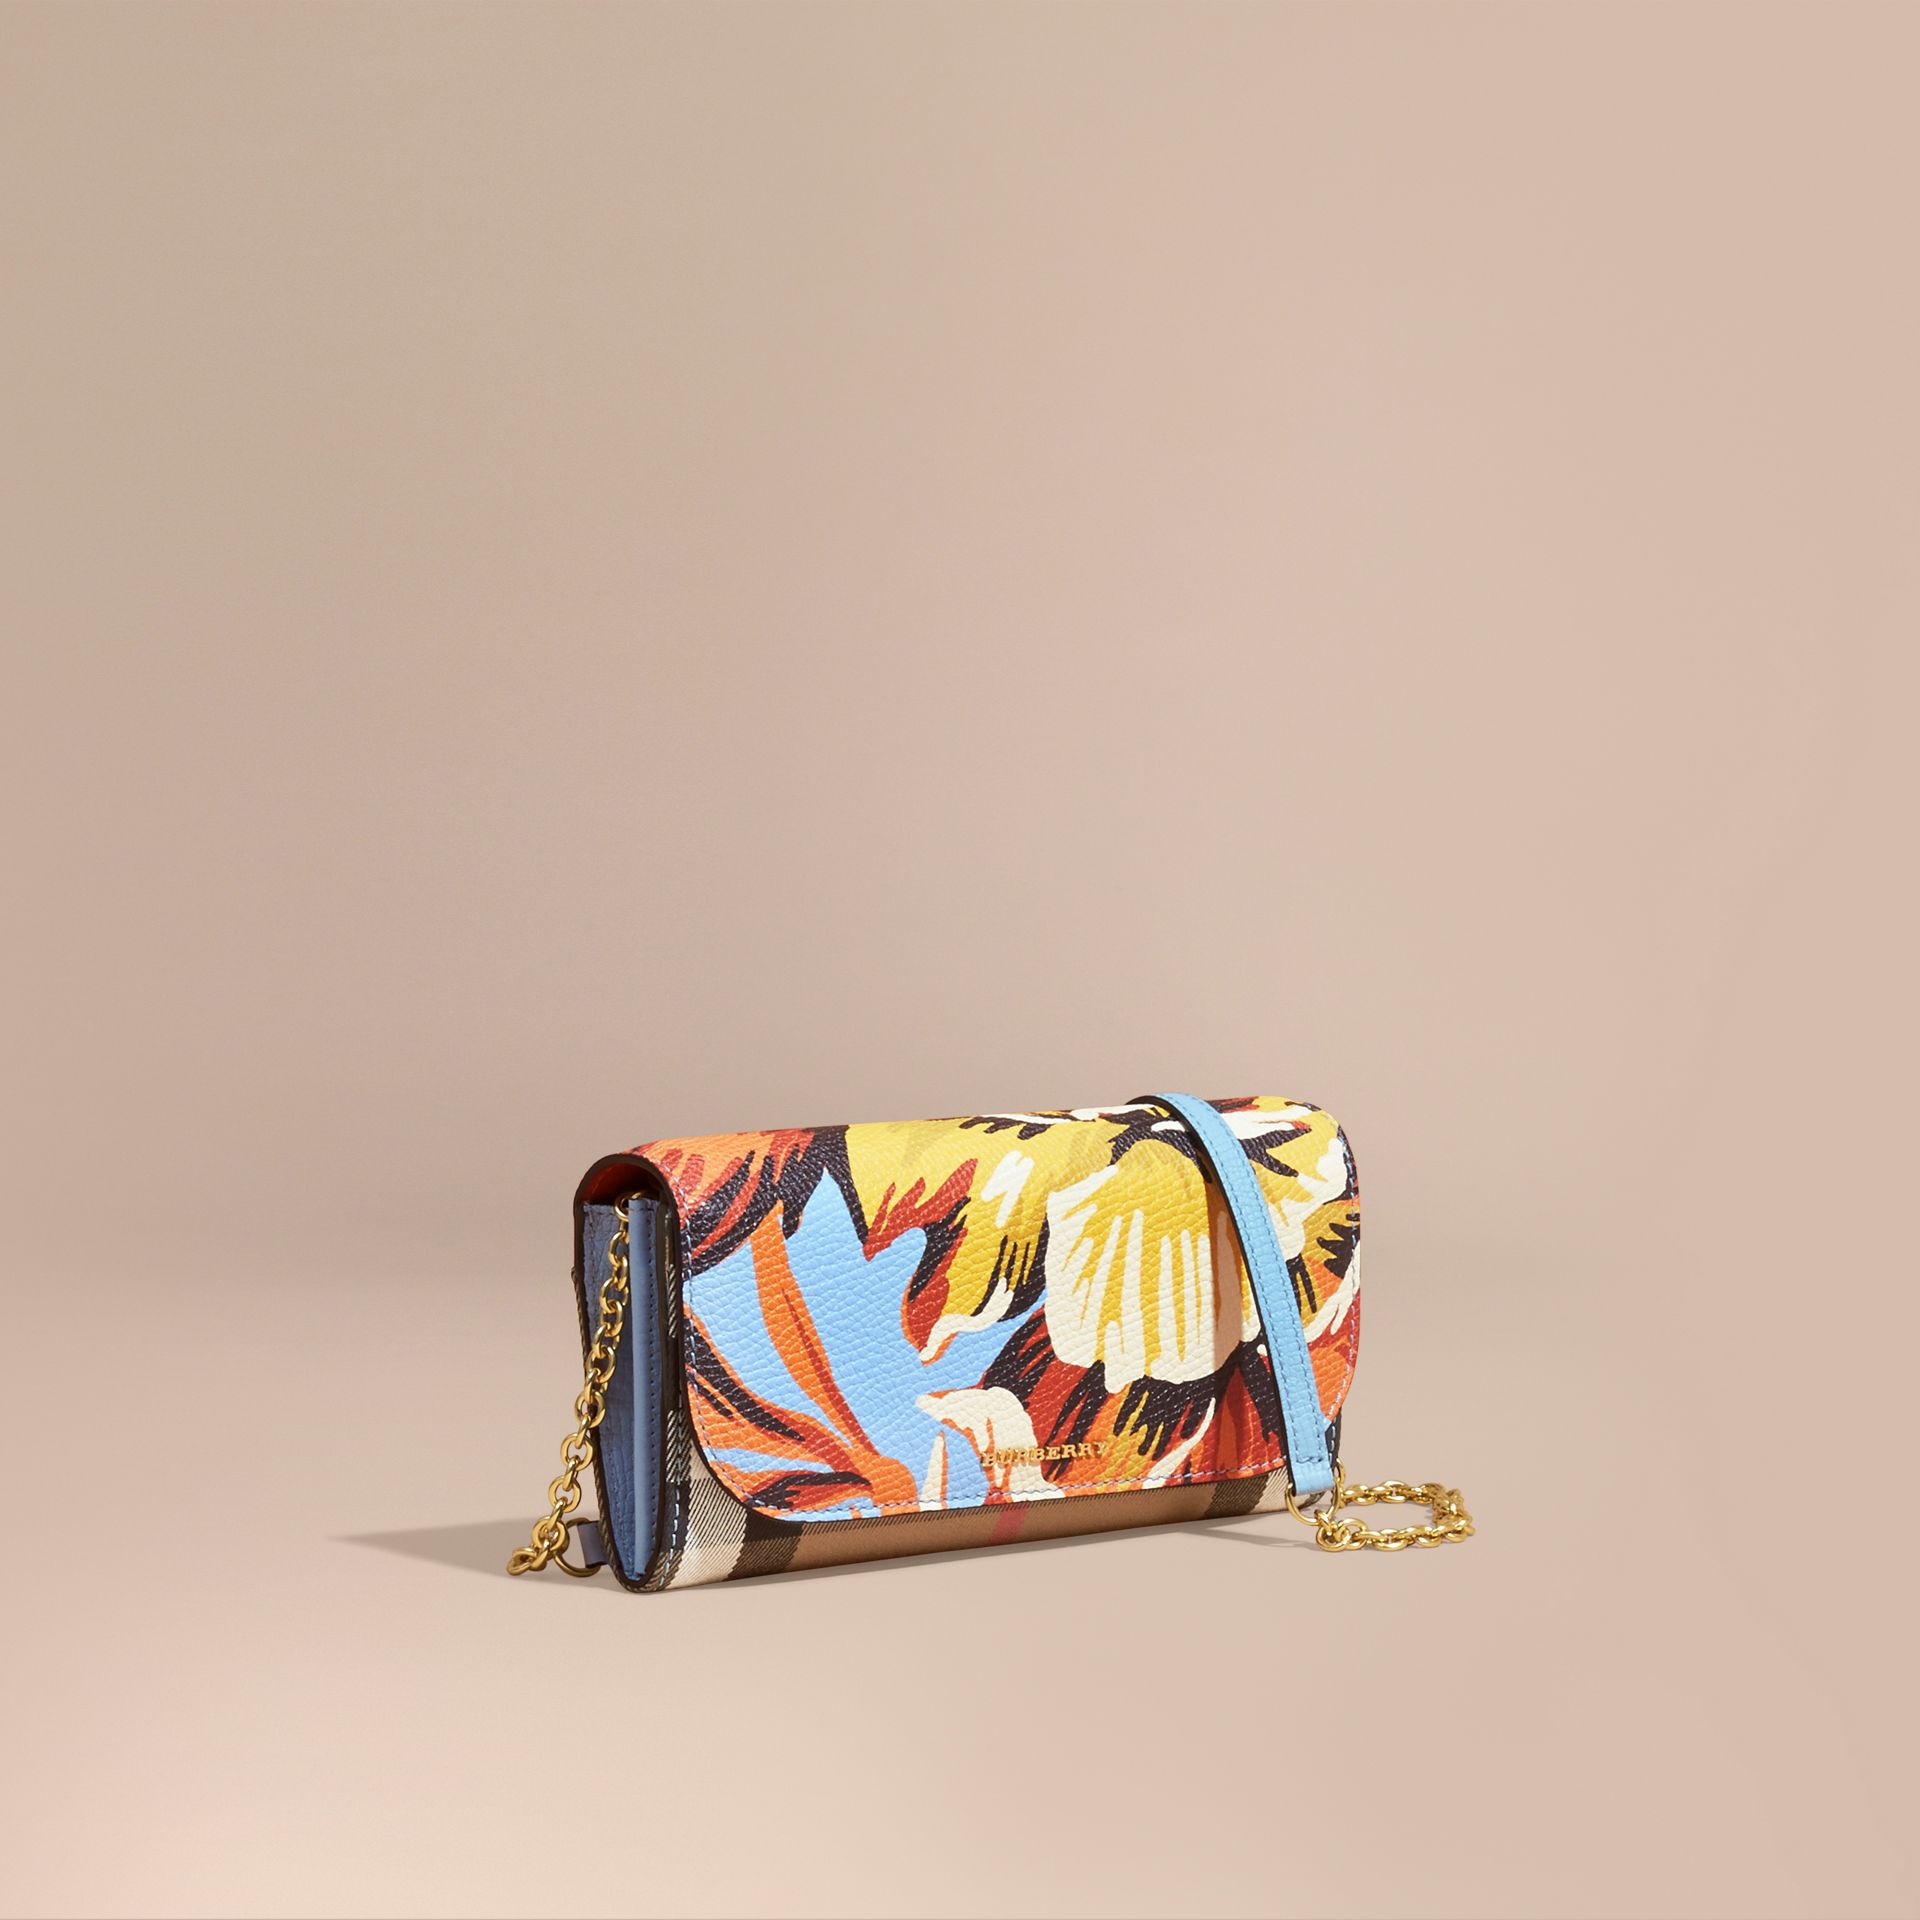 Pale blue/vibrant orange House Check and Peony Rose Print Wallet with Chain Pale Blue/vibrant Orange - gallery image 1